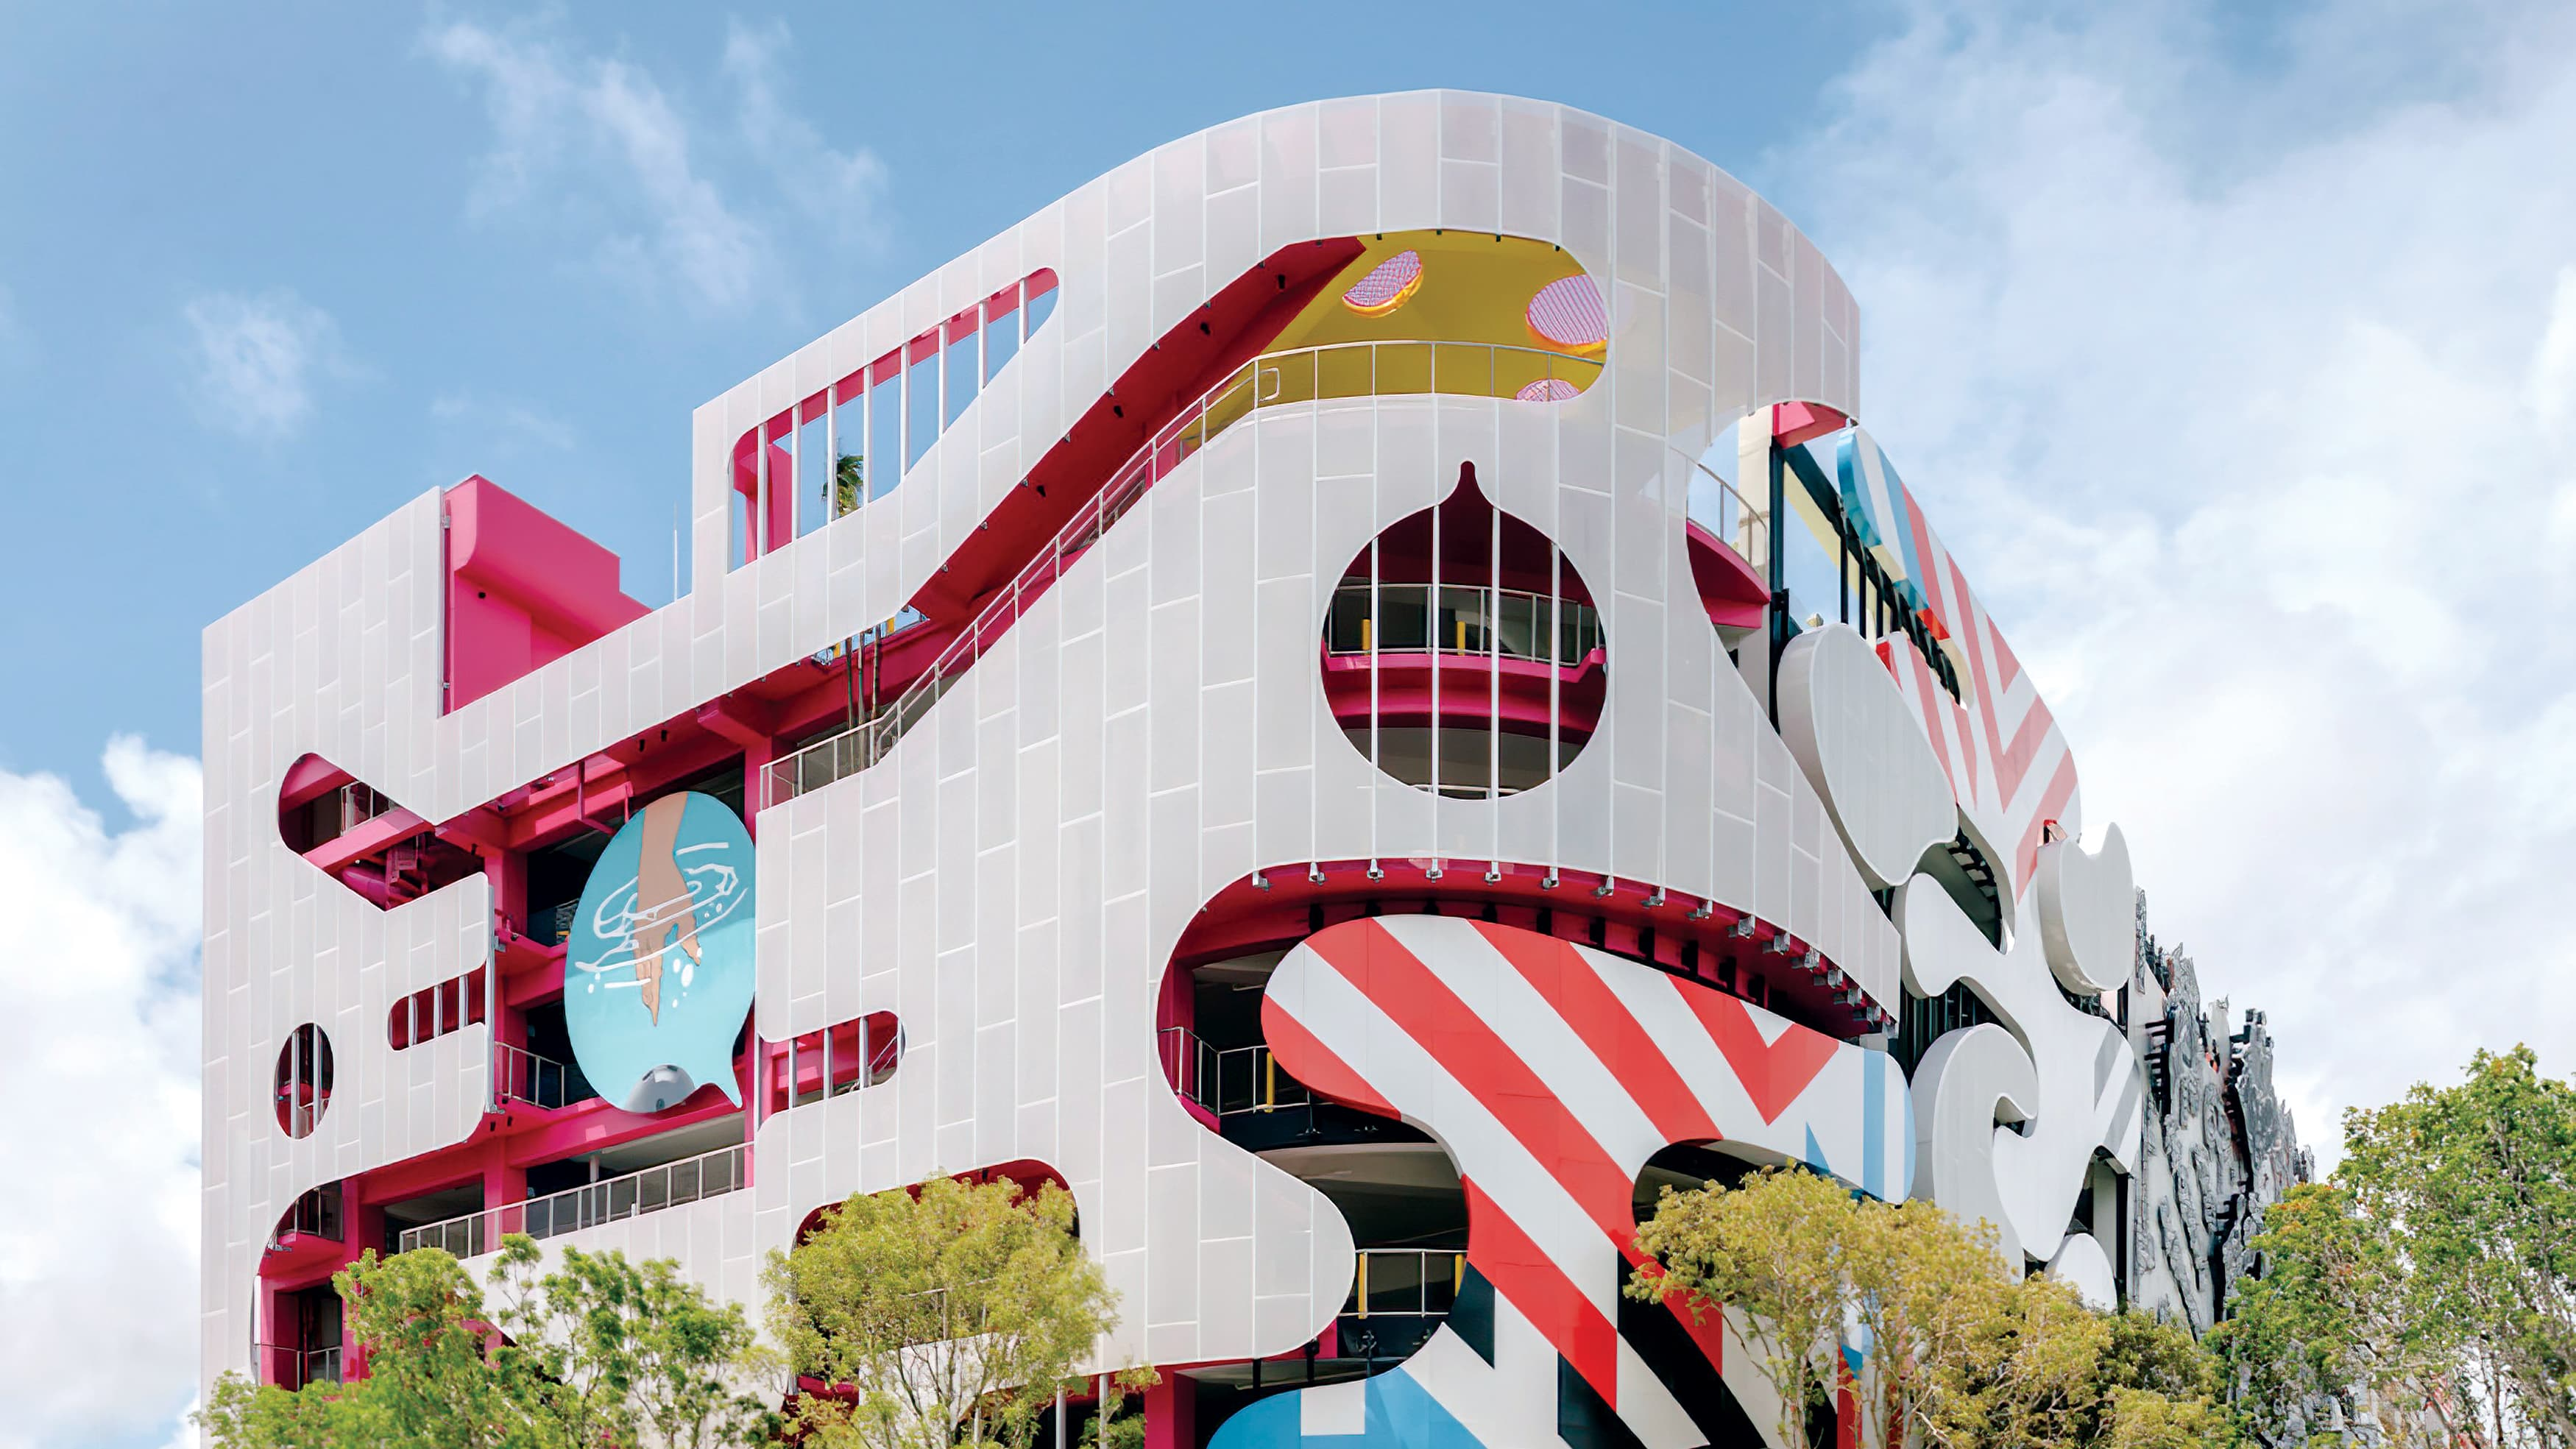 Multi-colored and patterned parking garage located in Miami Design District